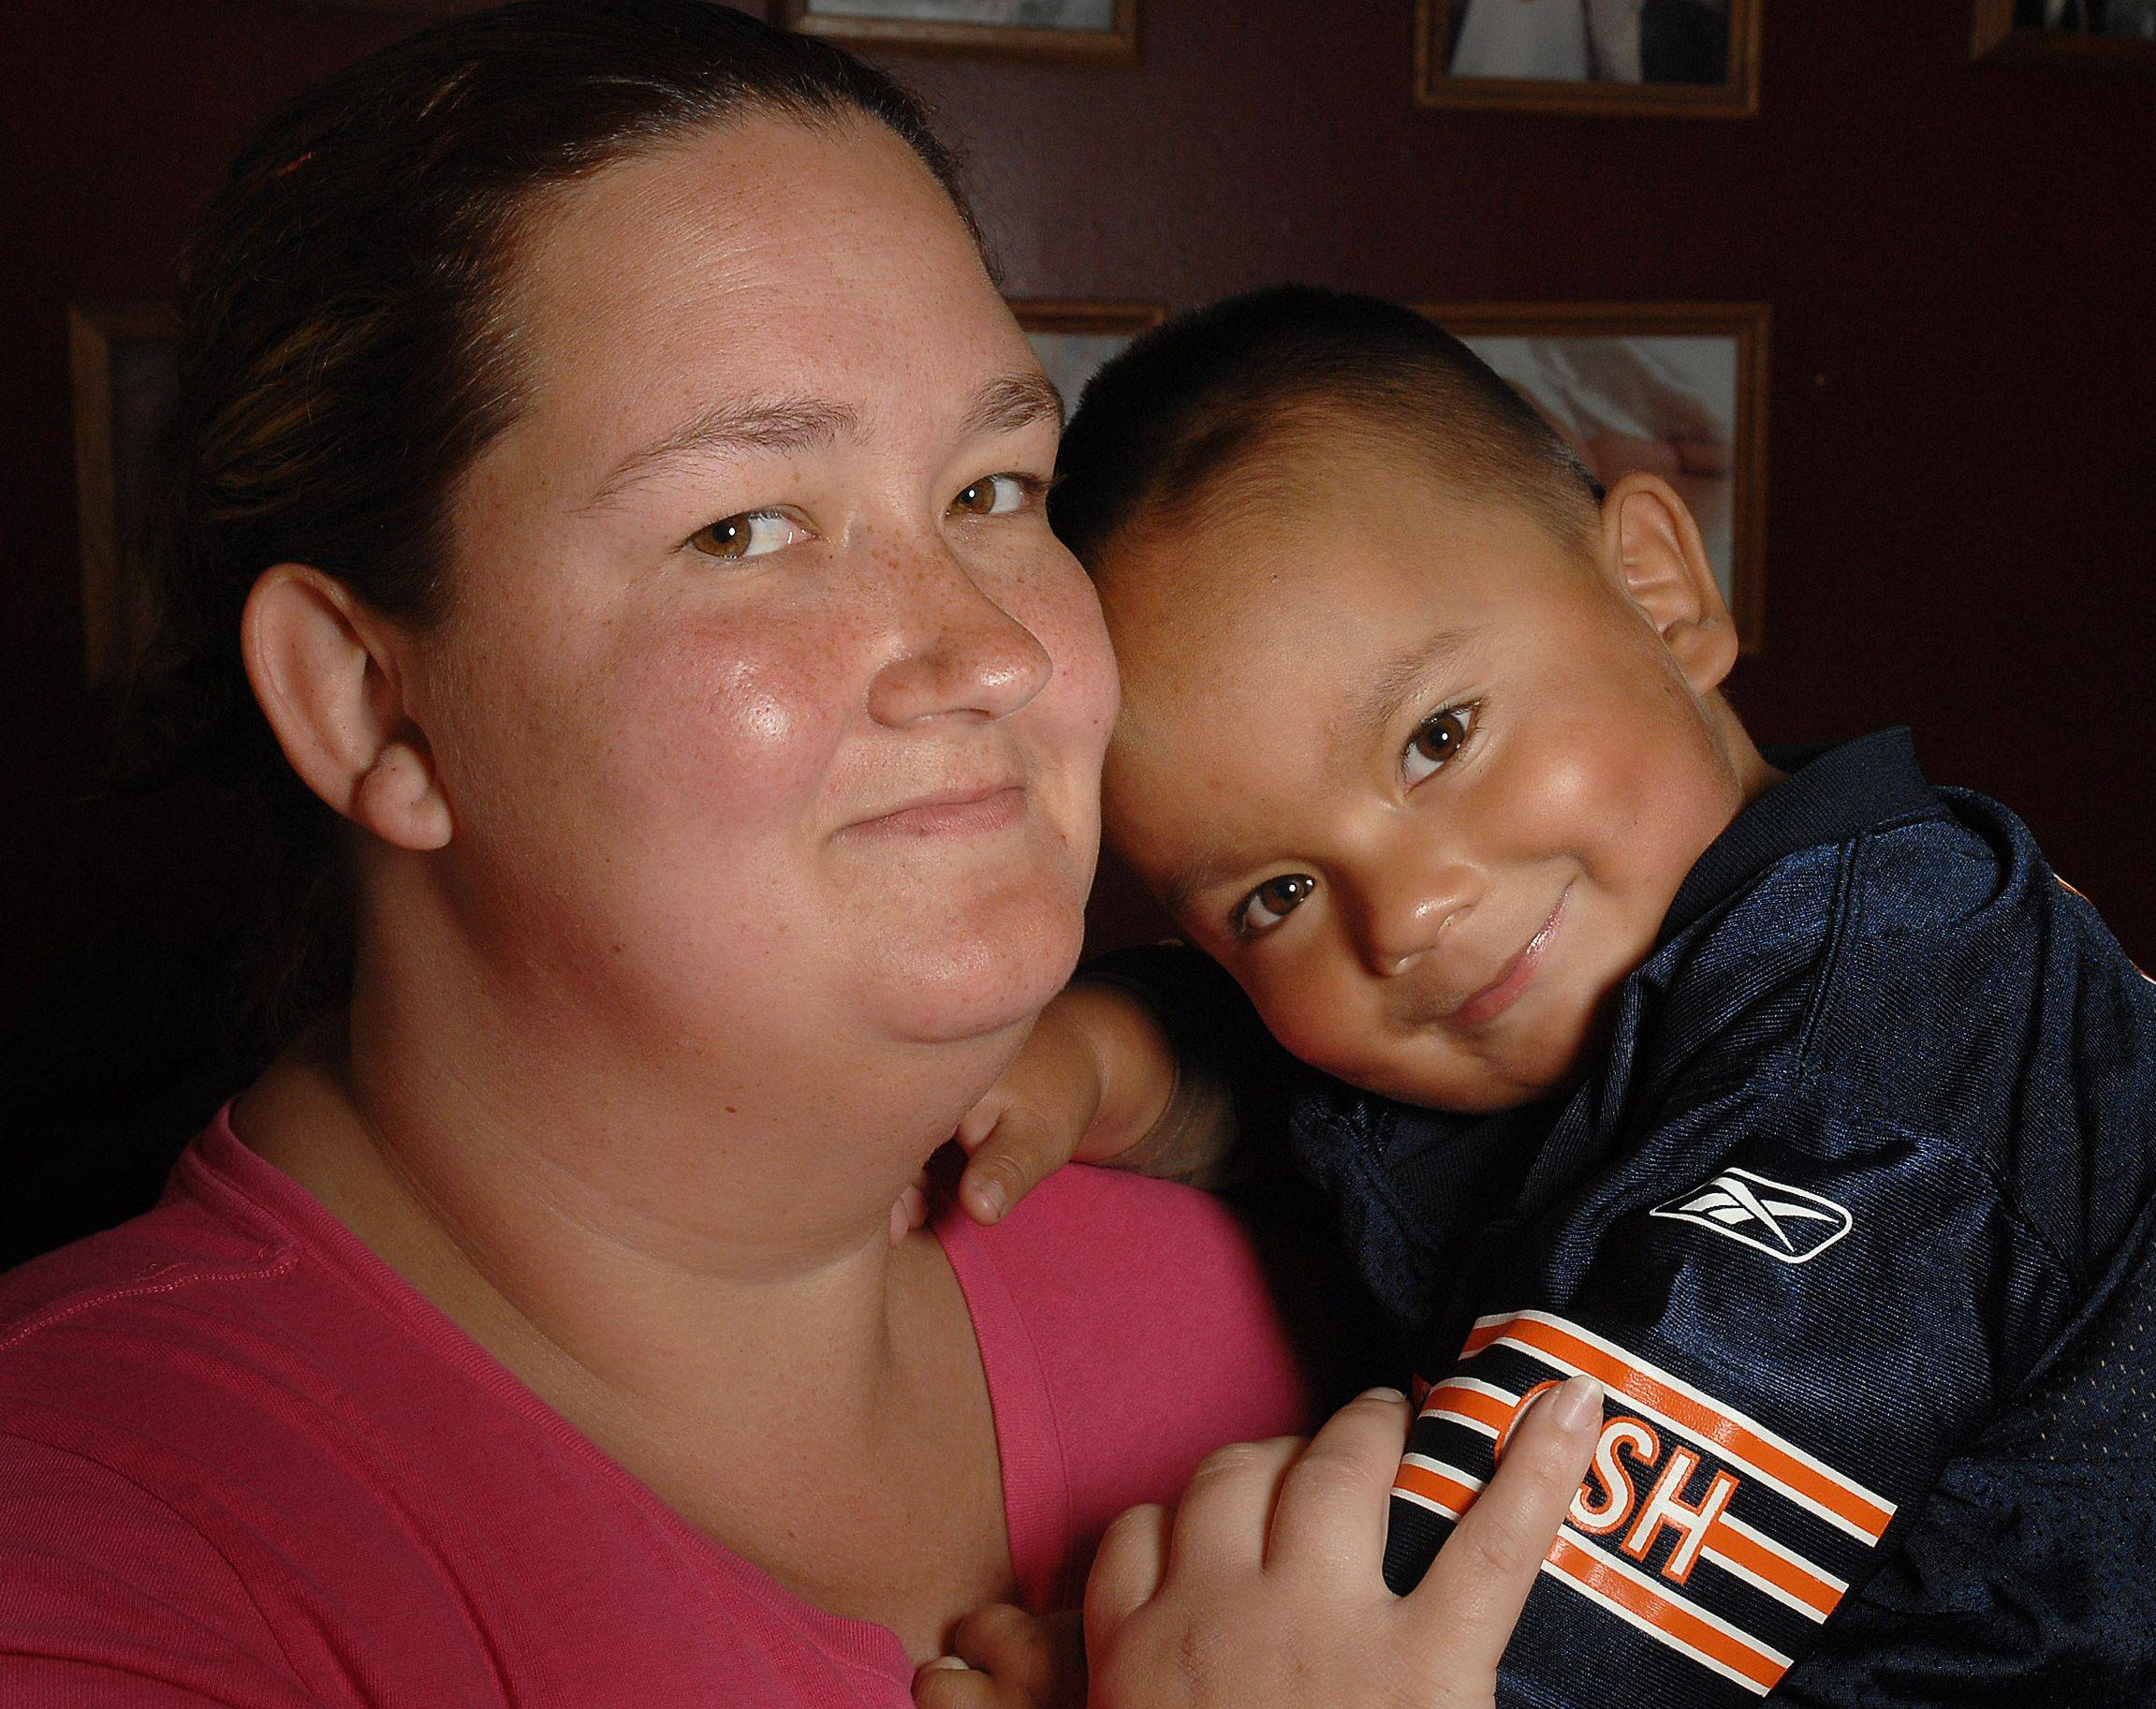 Tina Saavedra of Carpentersville spends most of her time caring for son Nathan, 3, who needs a second kidney transplant.